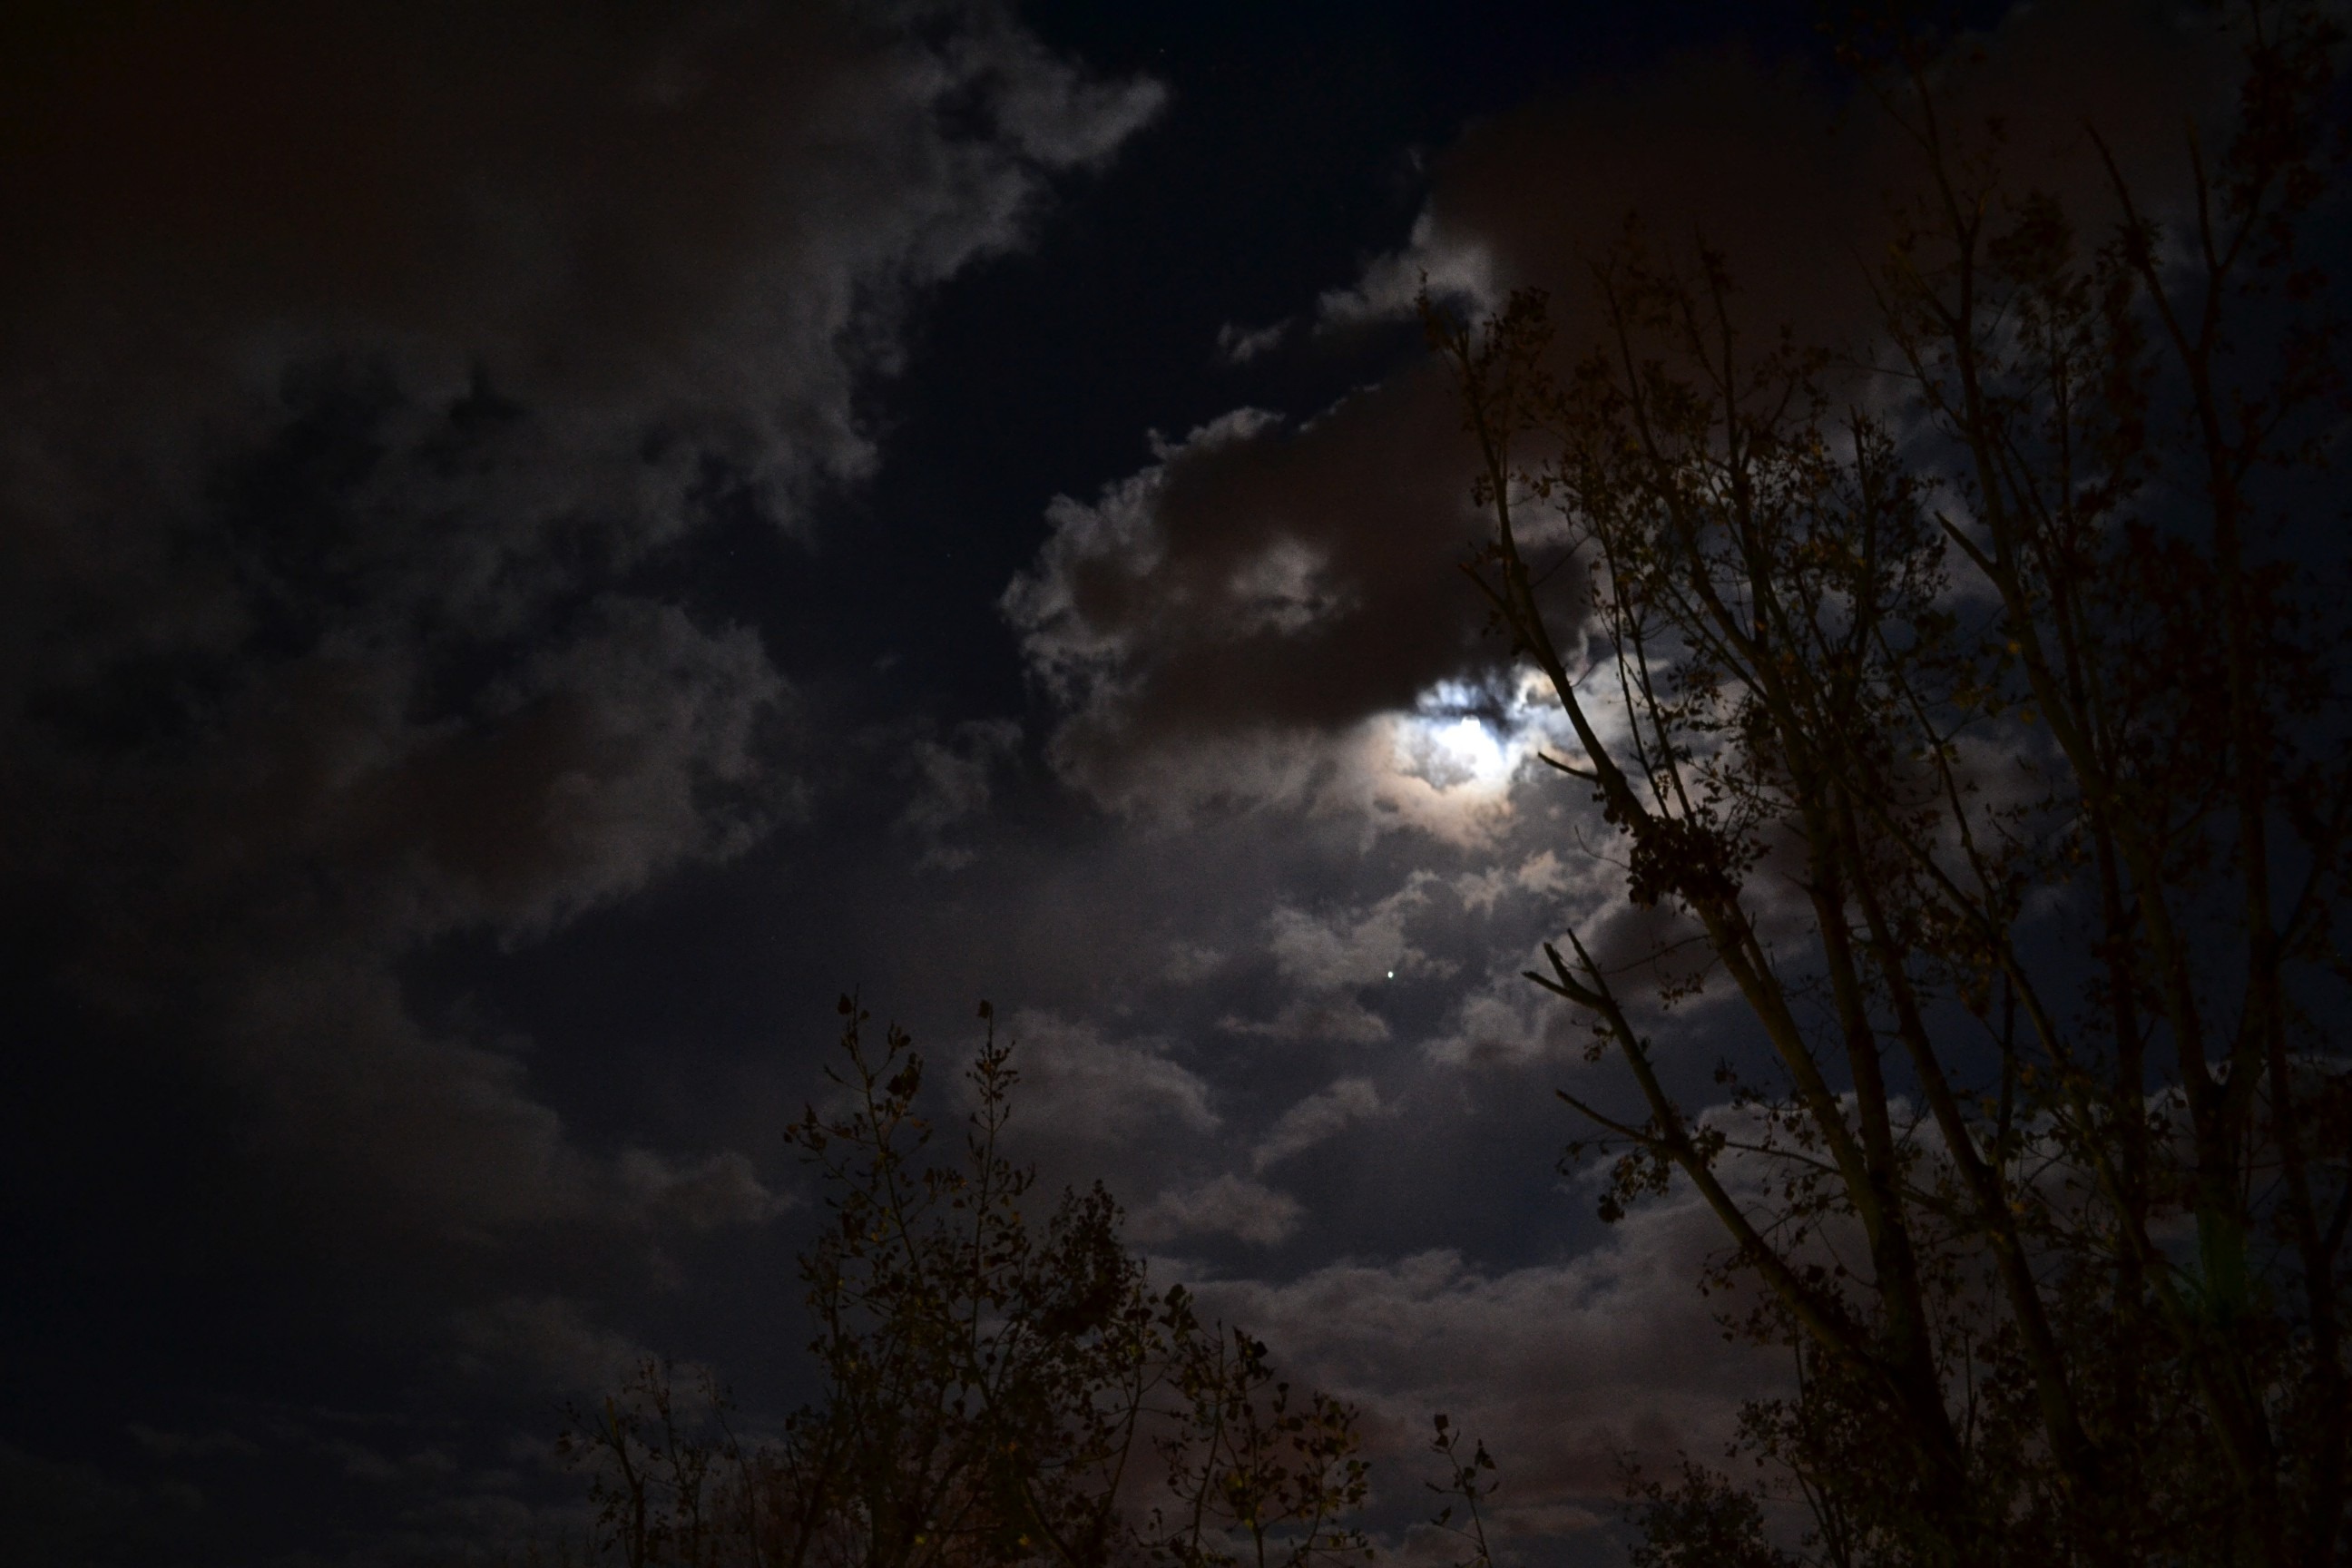 Debonair Clouds Quotes Moon Clouds Sketch Full Moon Behind Full Moon Behind Night Colorado Moon dpreview Moon And Clouds